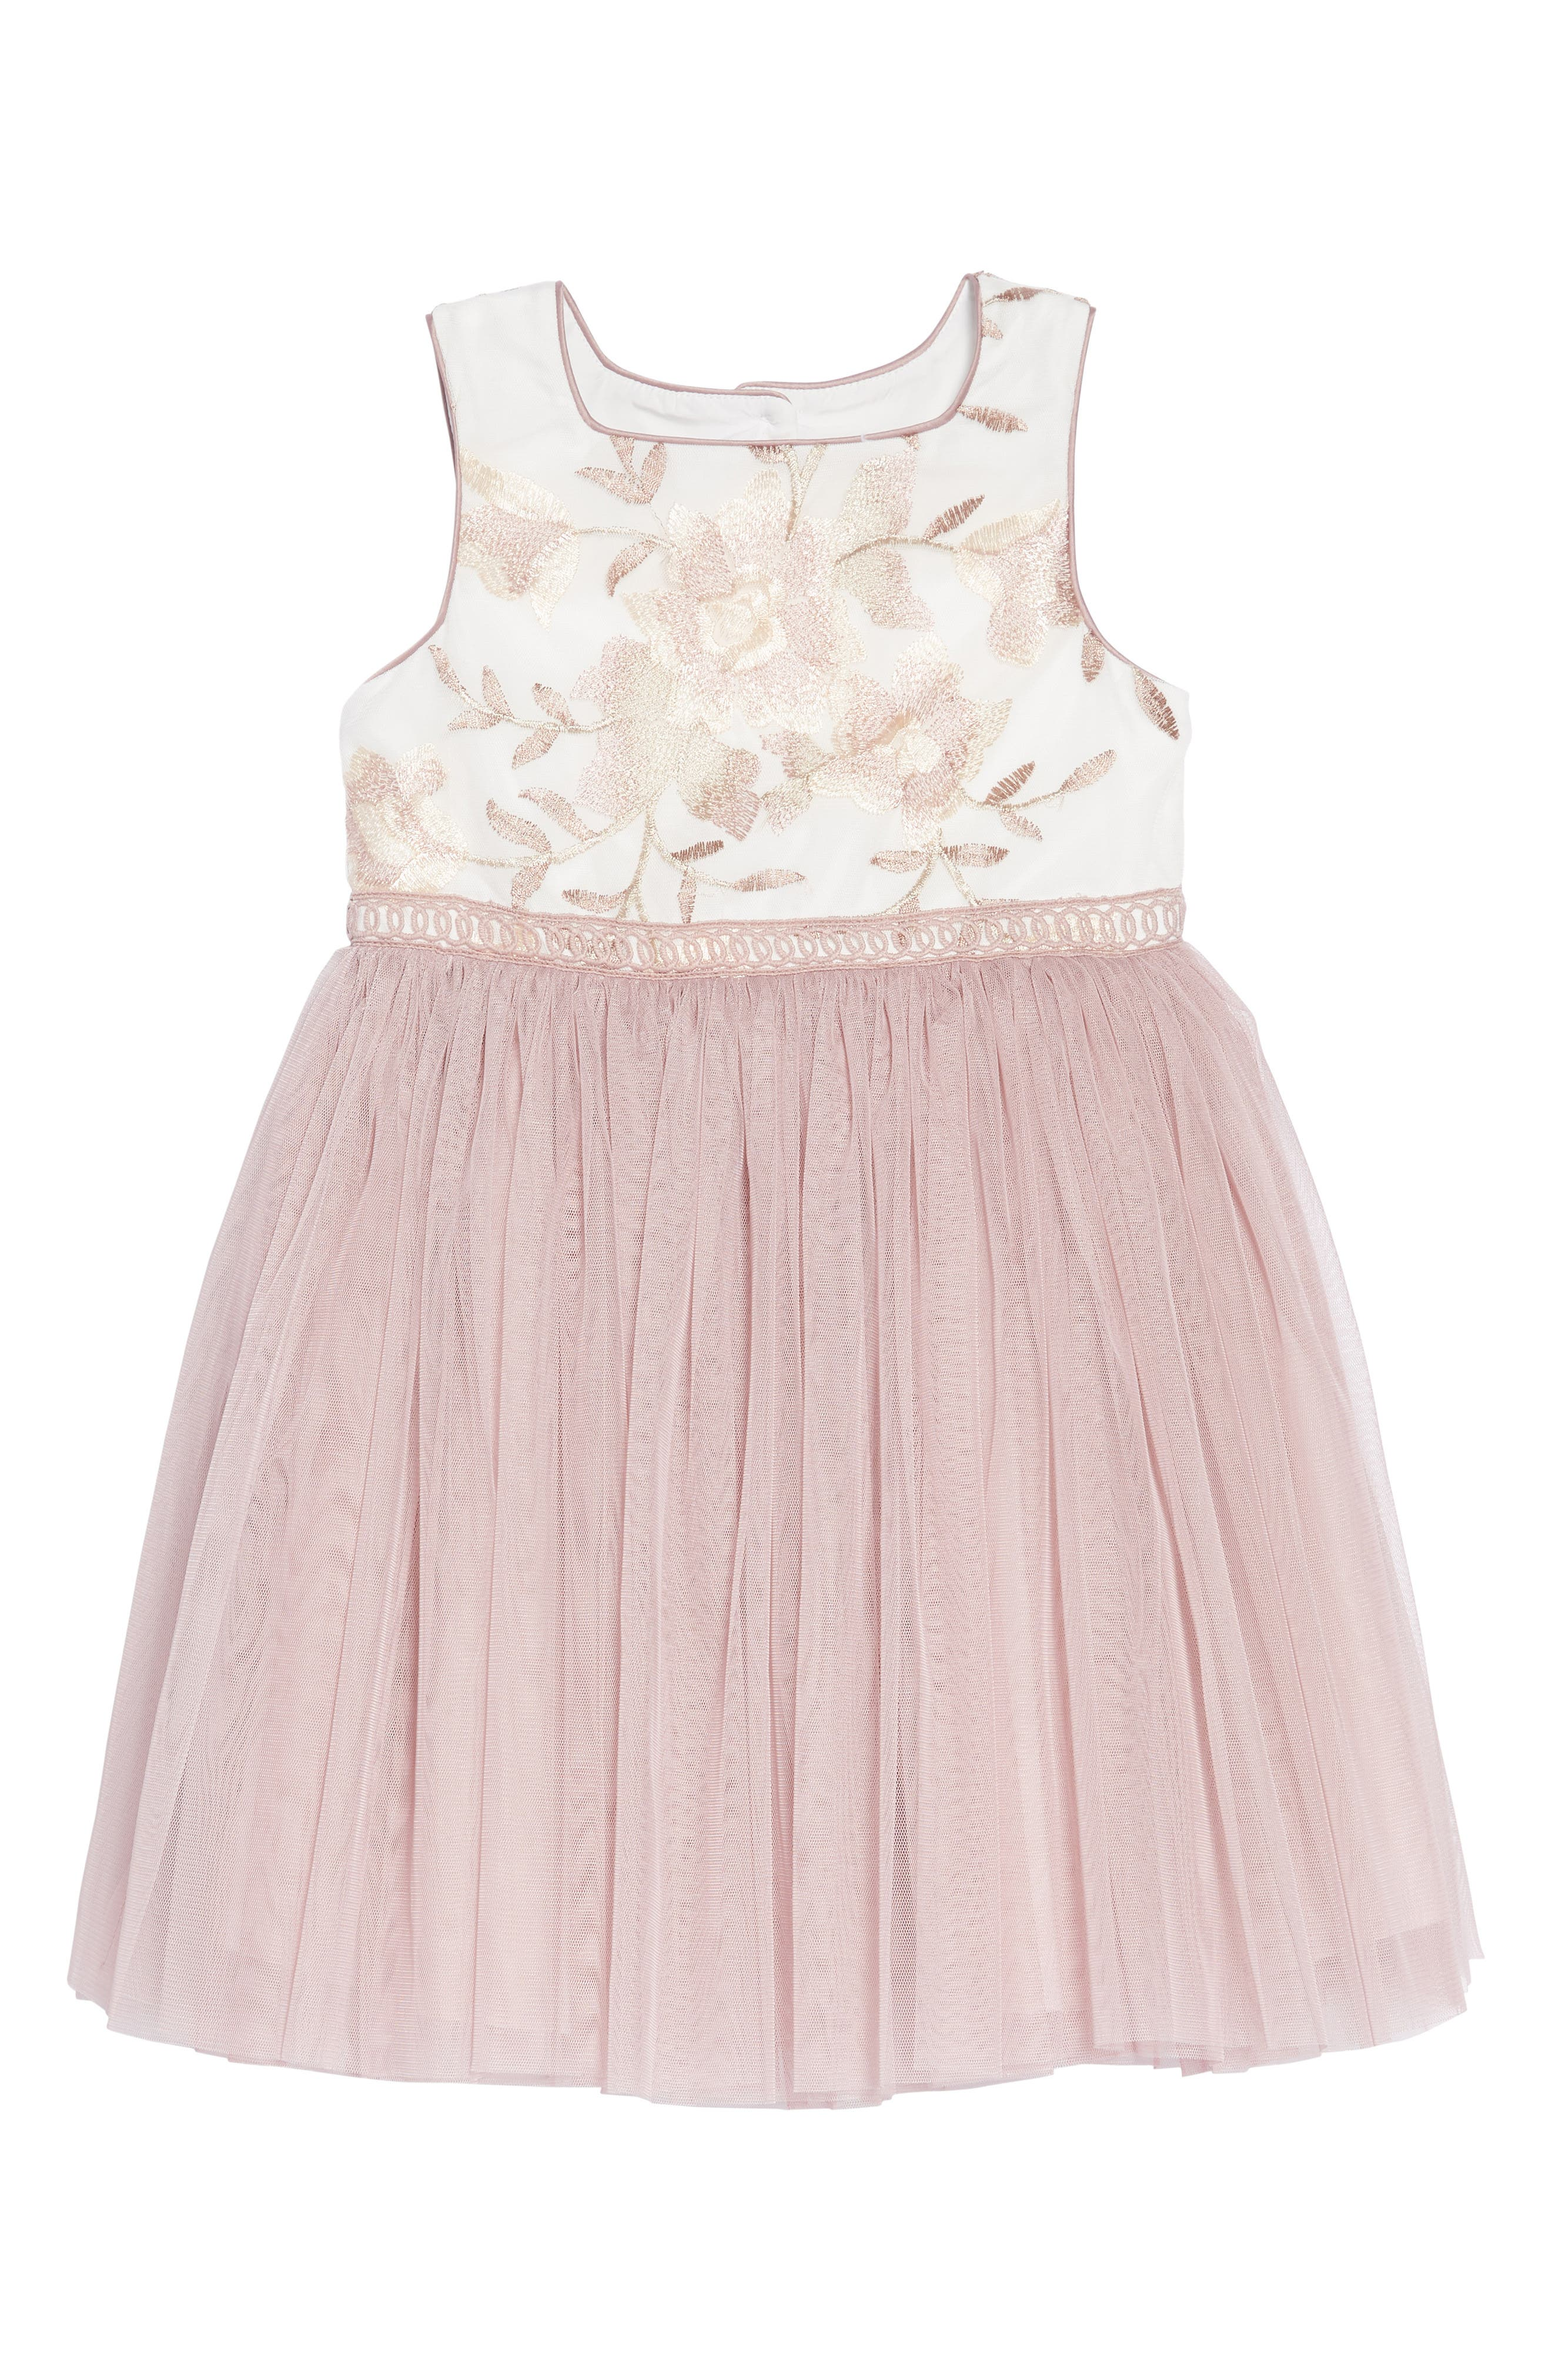 Embroidered Tulle Dress,                         Main,                         color, MULTI